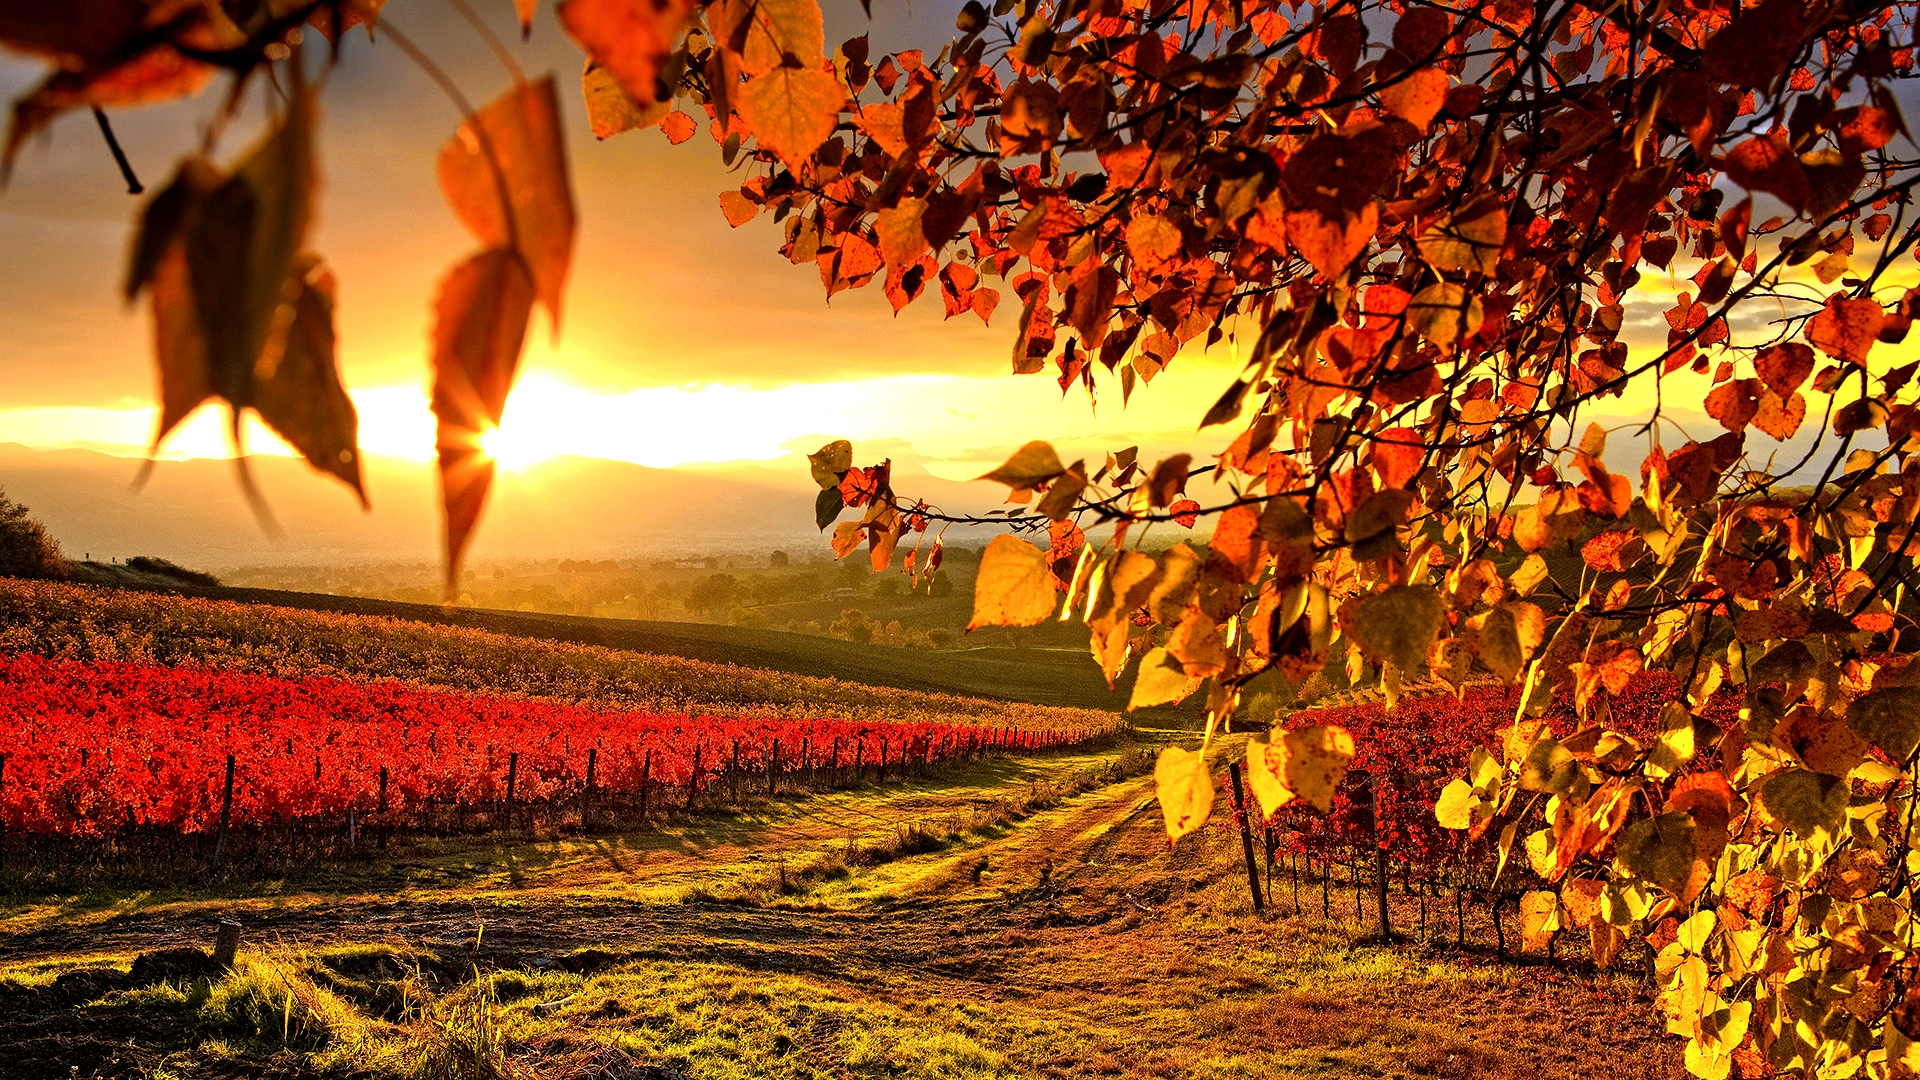 Vineyard autumn seasons maurizio rellini 1024x768